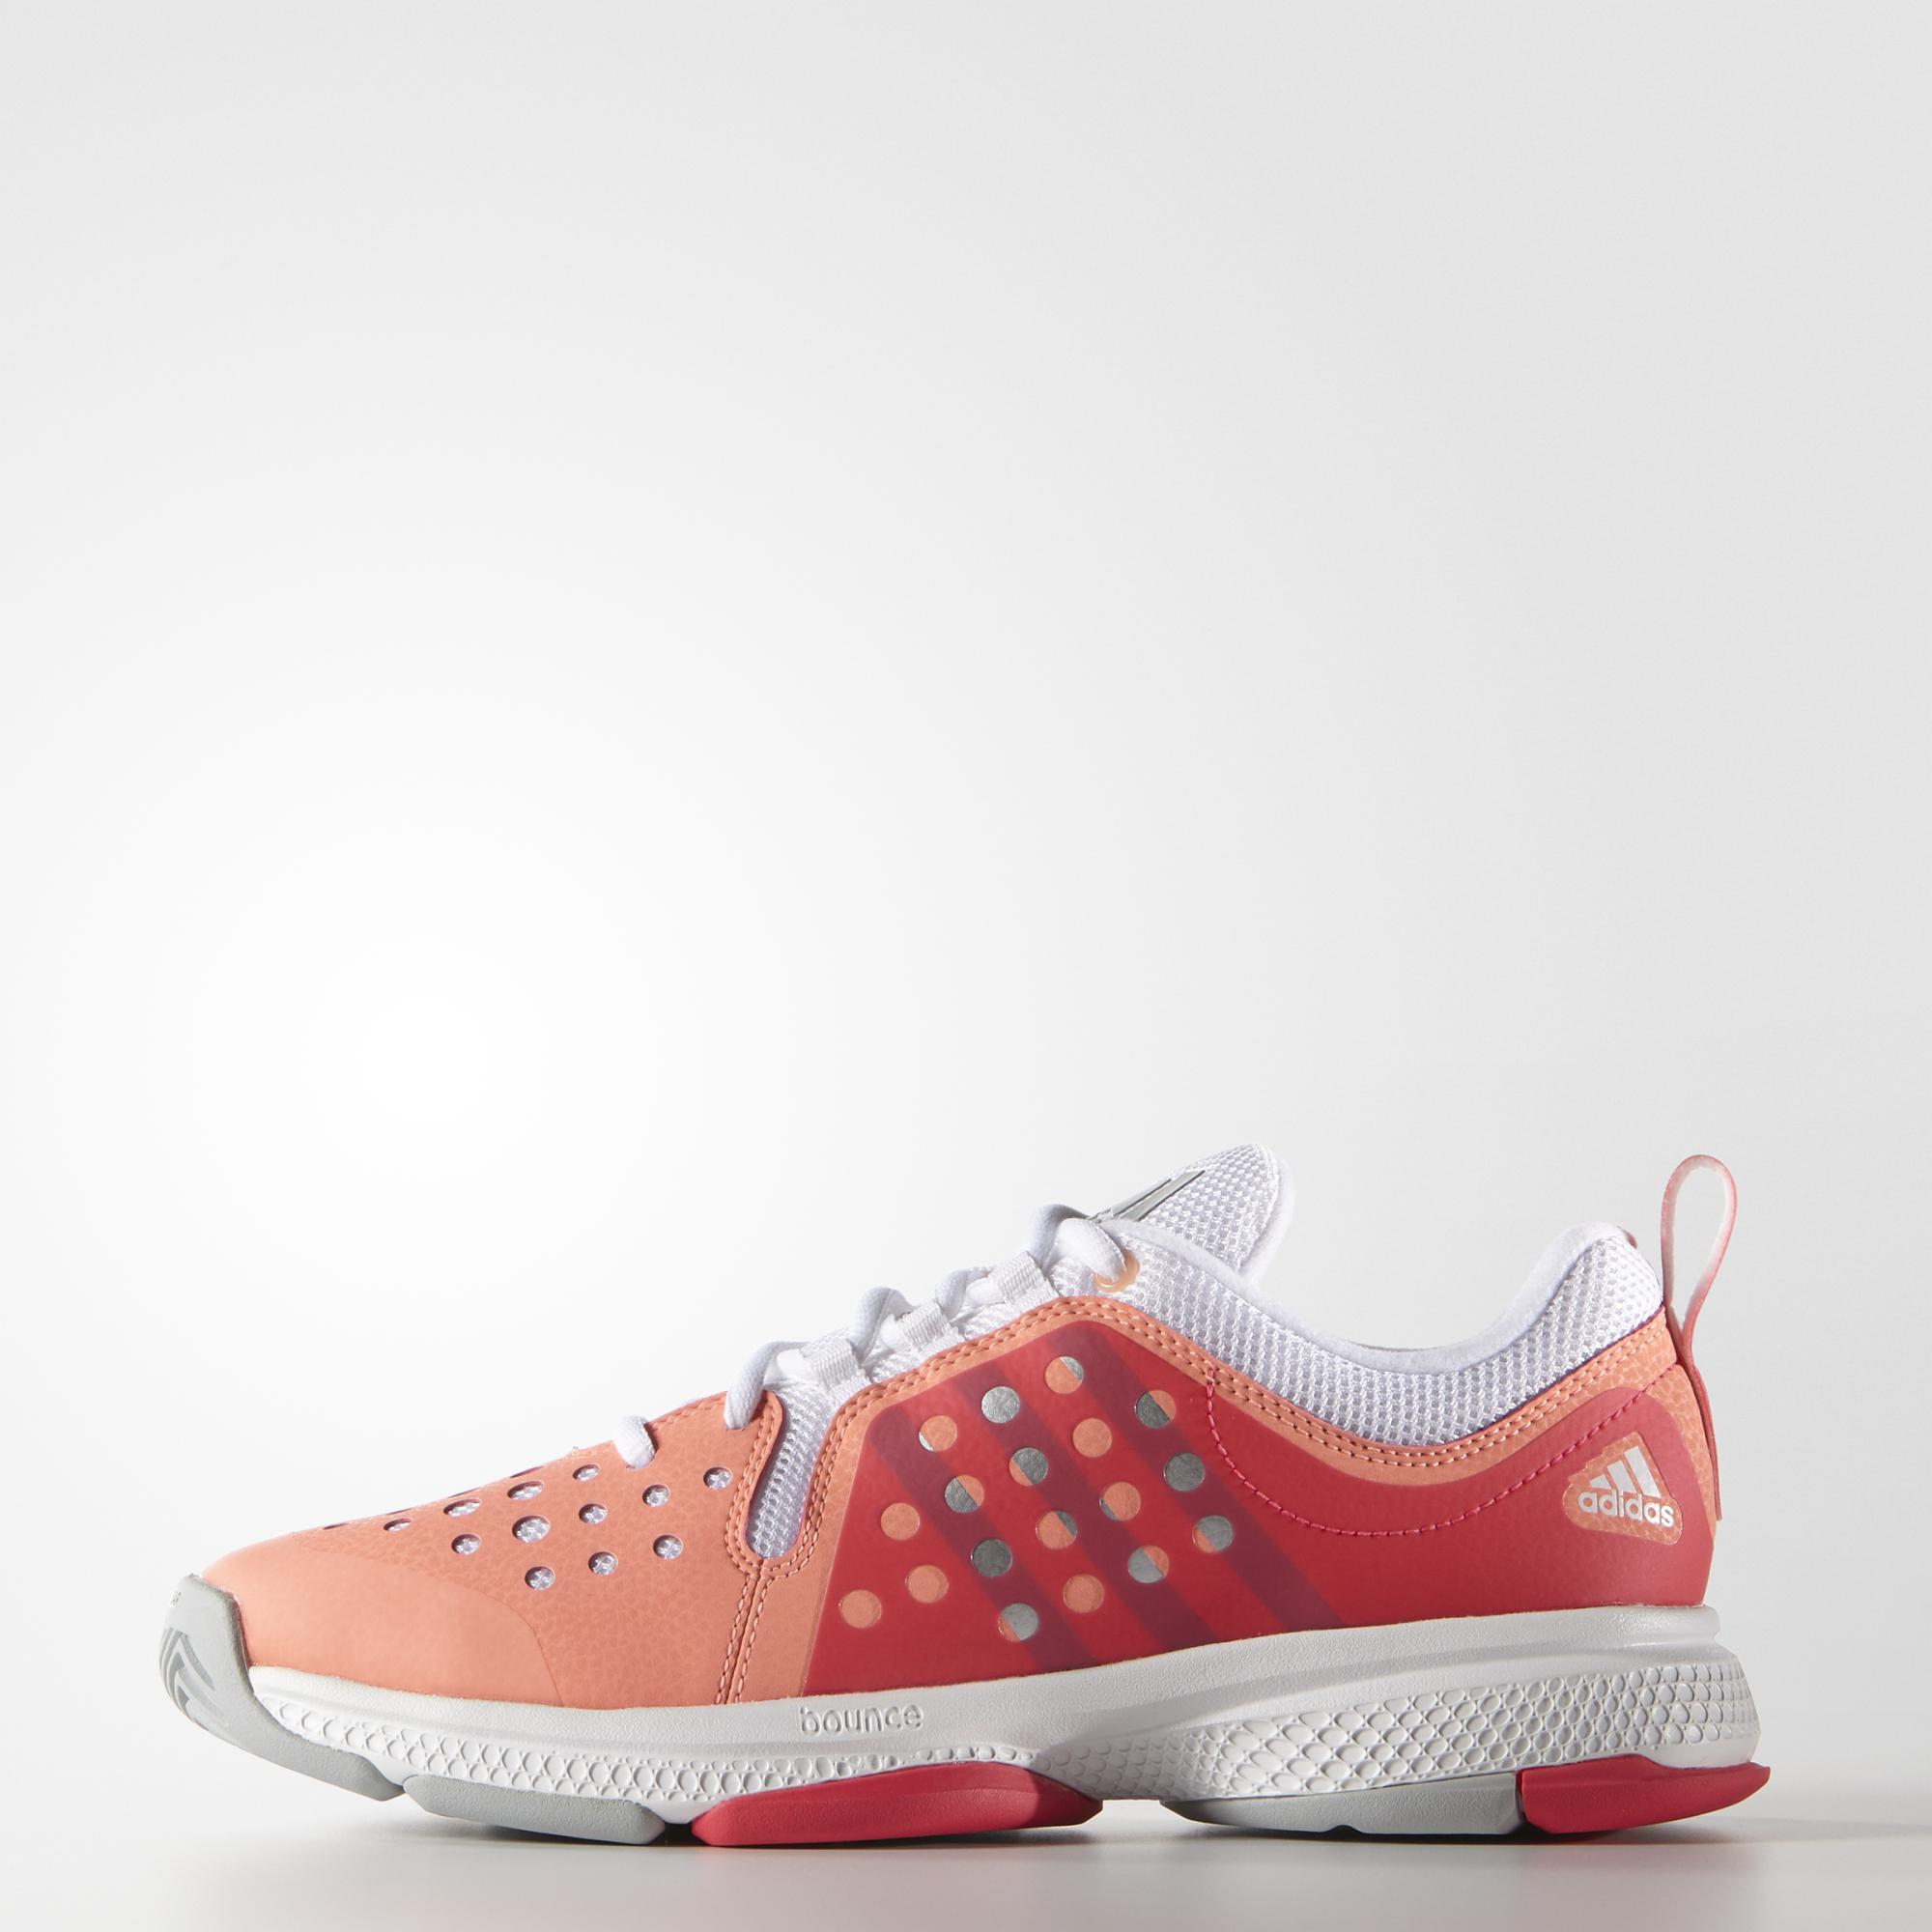 online retailer ab866 edf6e Adidas Womens Barricade Classic Bounce Tennis Shoes - Red - Tennisnuts.com